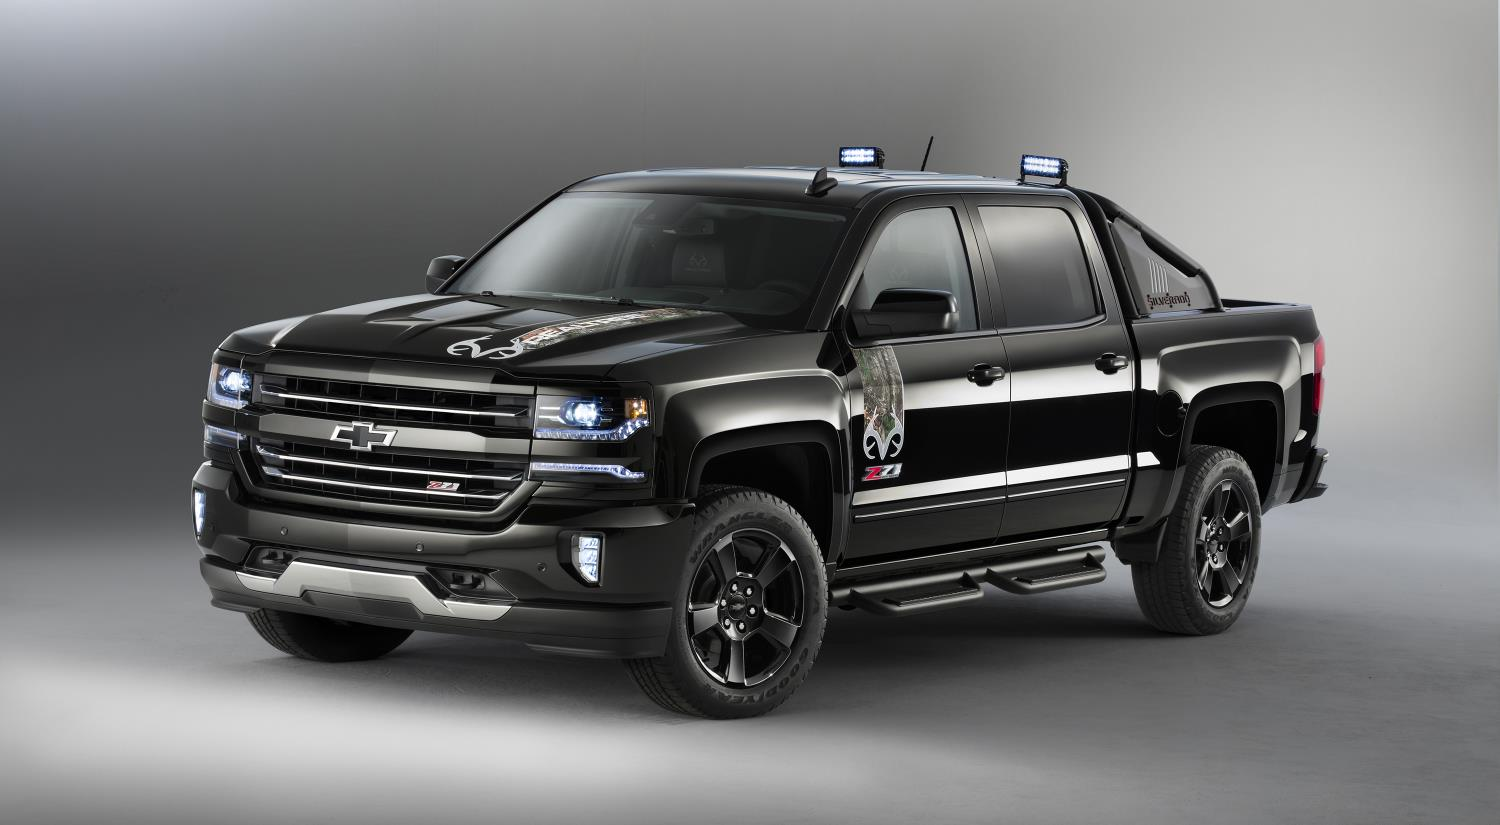 Lone Star Chevrolet >> 2016 Chevrolet Silverado Rally Edition Debuts at Texas Motor Speedway - autoevolution